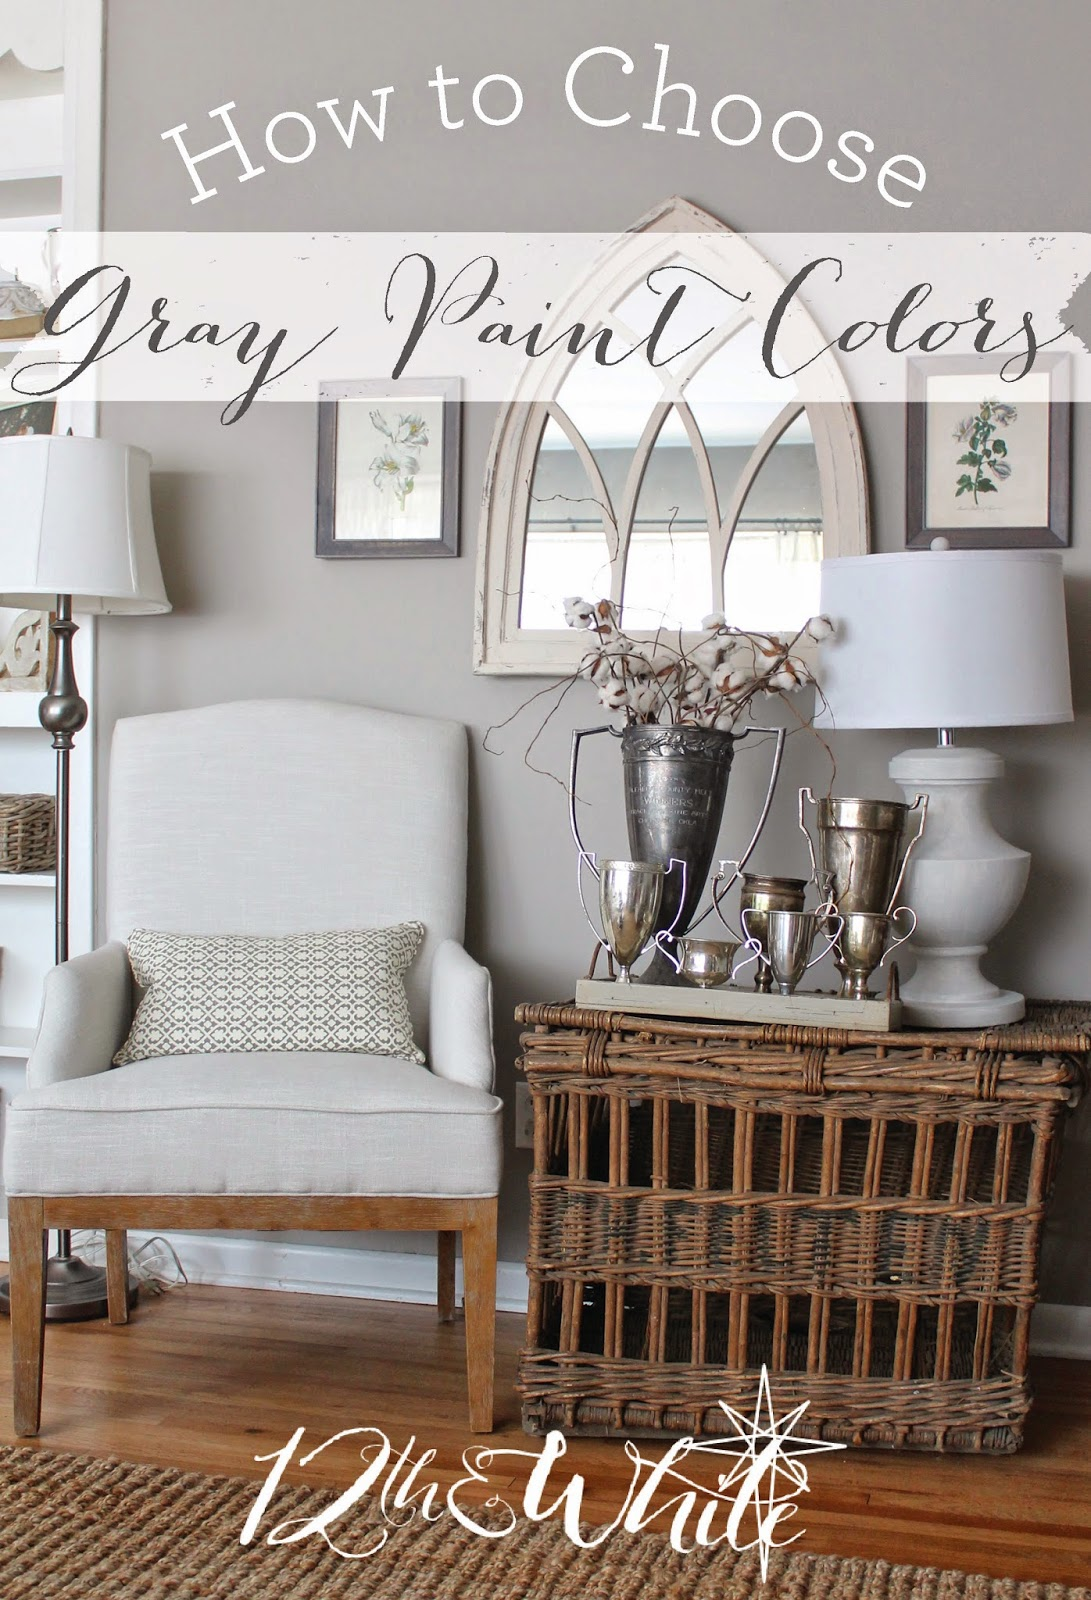 gray paint colors for living room leather couch 12th and white how to choose we have five different in our home